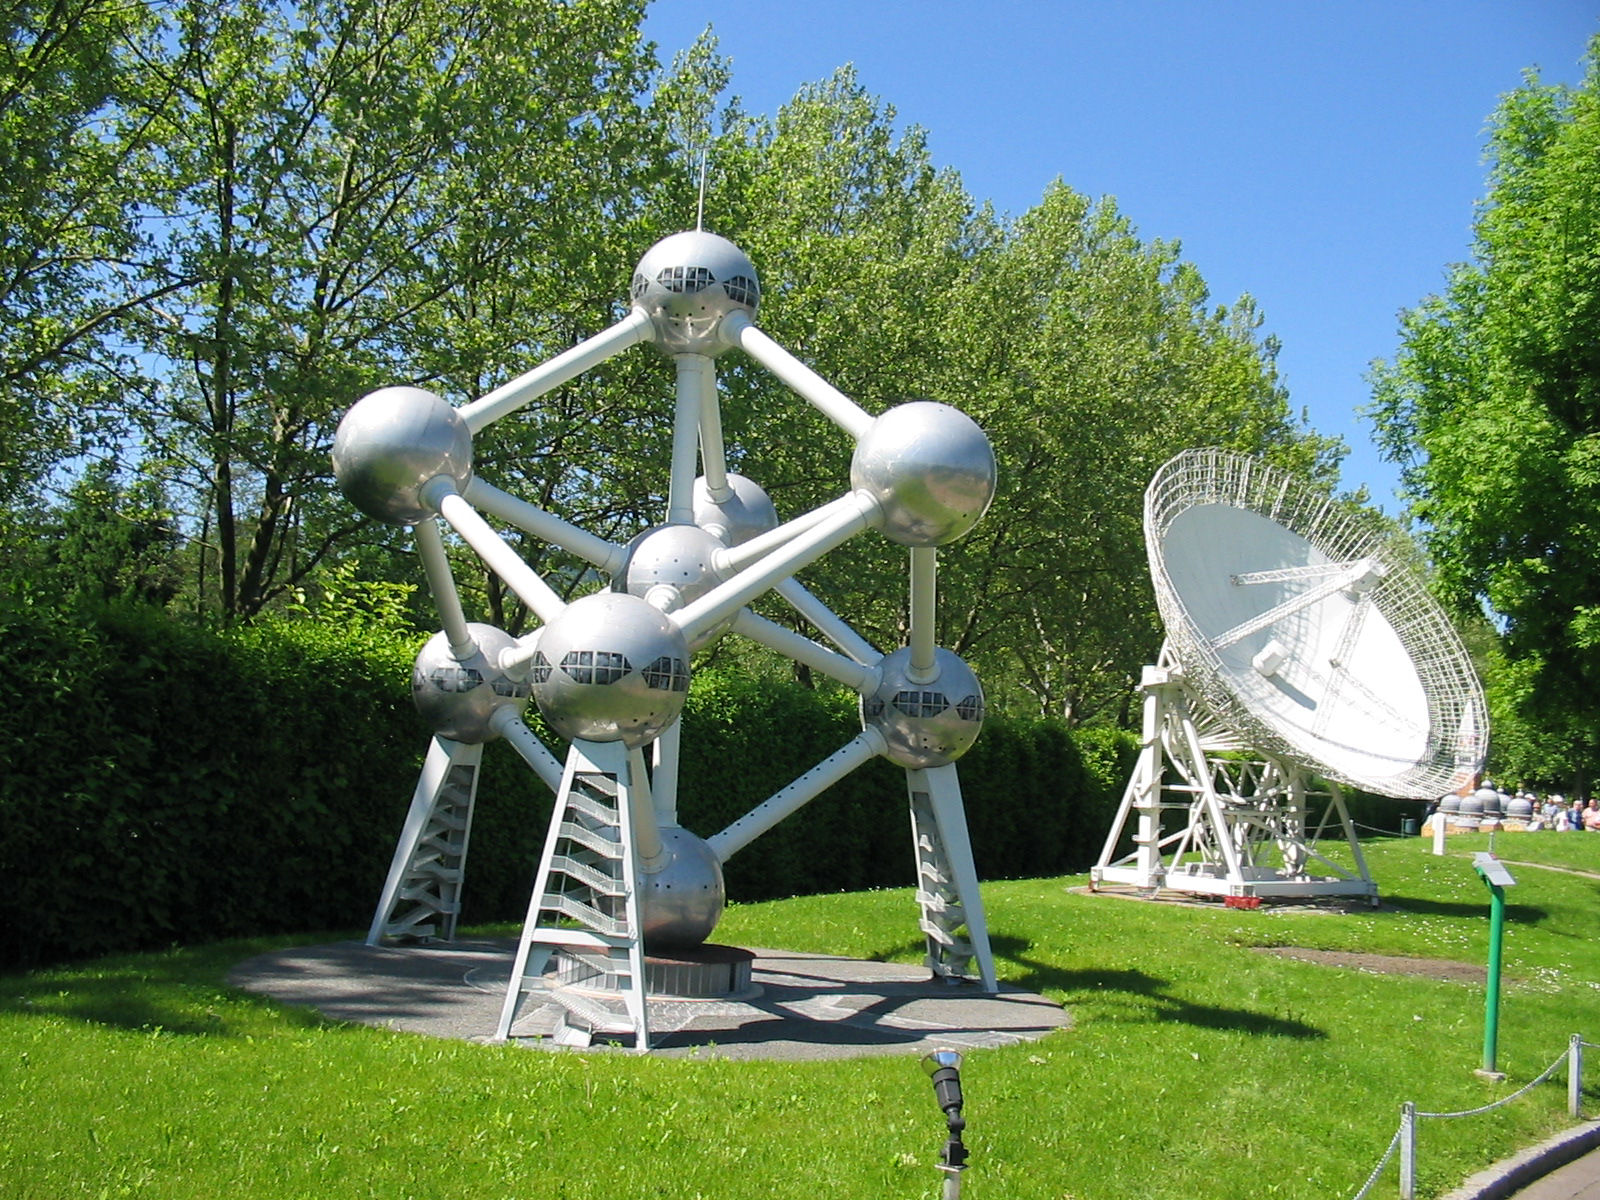 Atomium and Radioteleskop Effelsberg displayed at the Minimundus miniature park in Klagenfurt, Austria